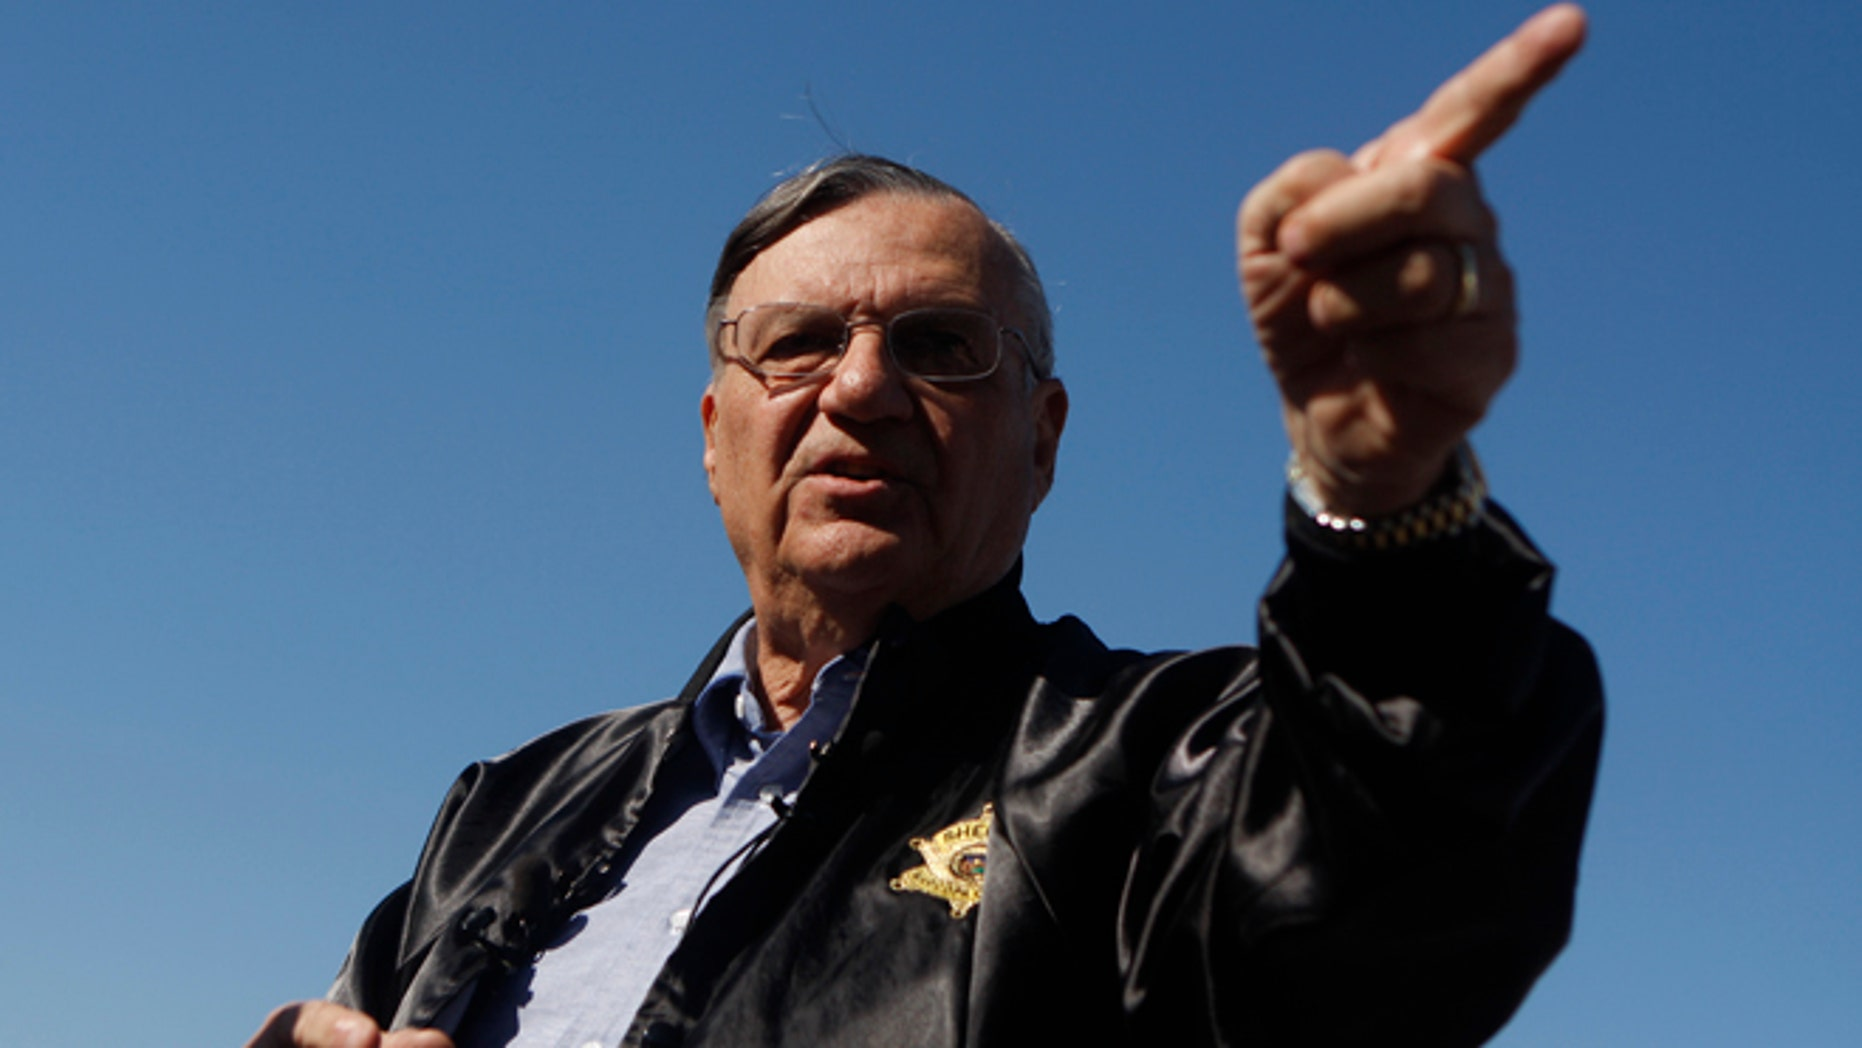 PHOENIX, AZ - APRIL 17:  Maricopa County Sheriff Officer Joe Arpaio gestures on April 17, 2009 in Phoenix, Arizona. Arpaio has been facing criticism from Hispanic activists and lawmakers, alleging that Arpaio's crackdown methods on illegal immigrants involve racial profiling. (Photo by Joshua Lott/Getty Images)